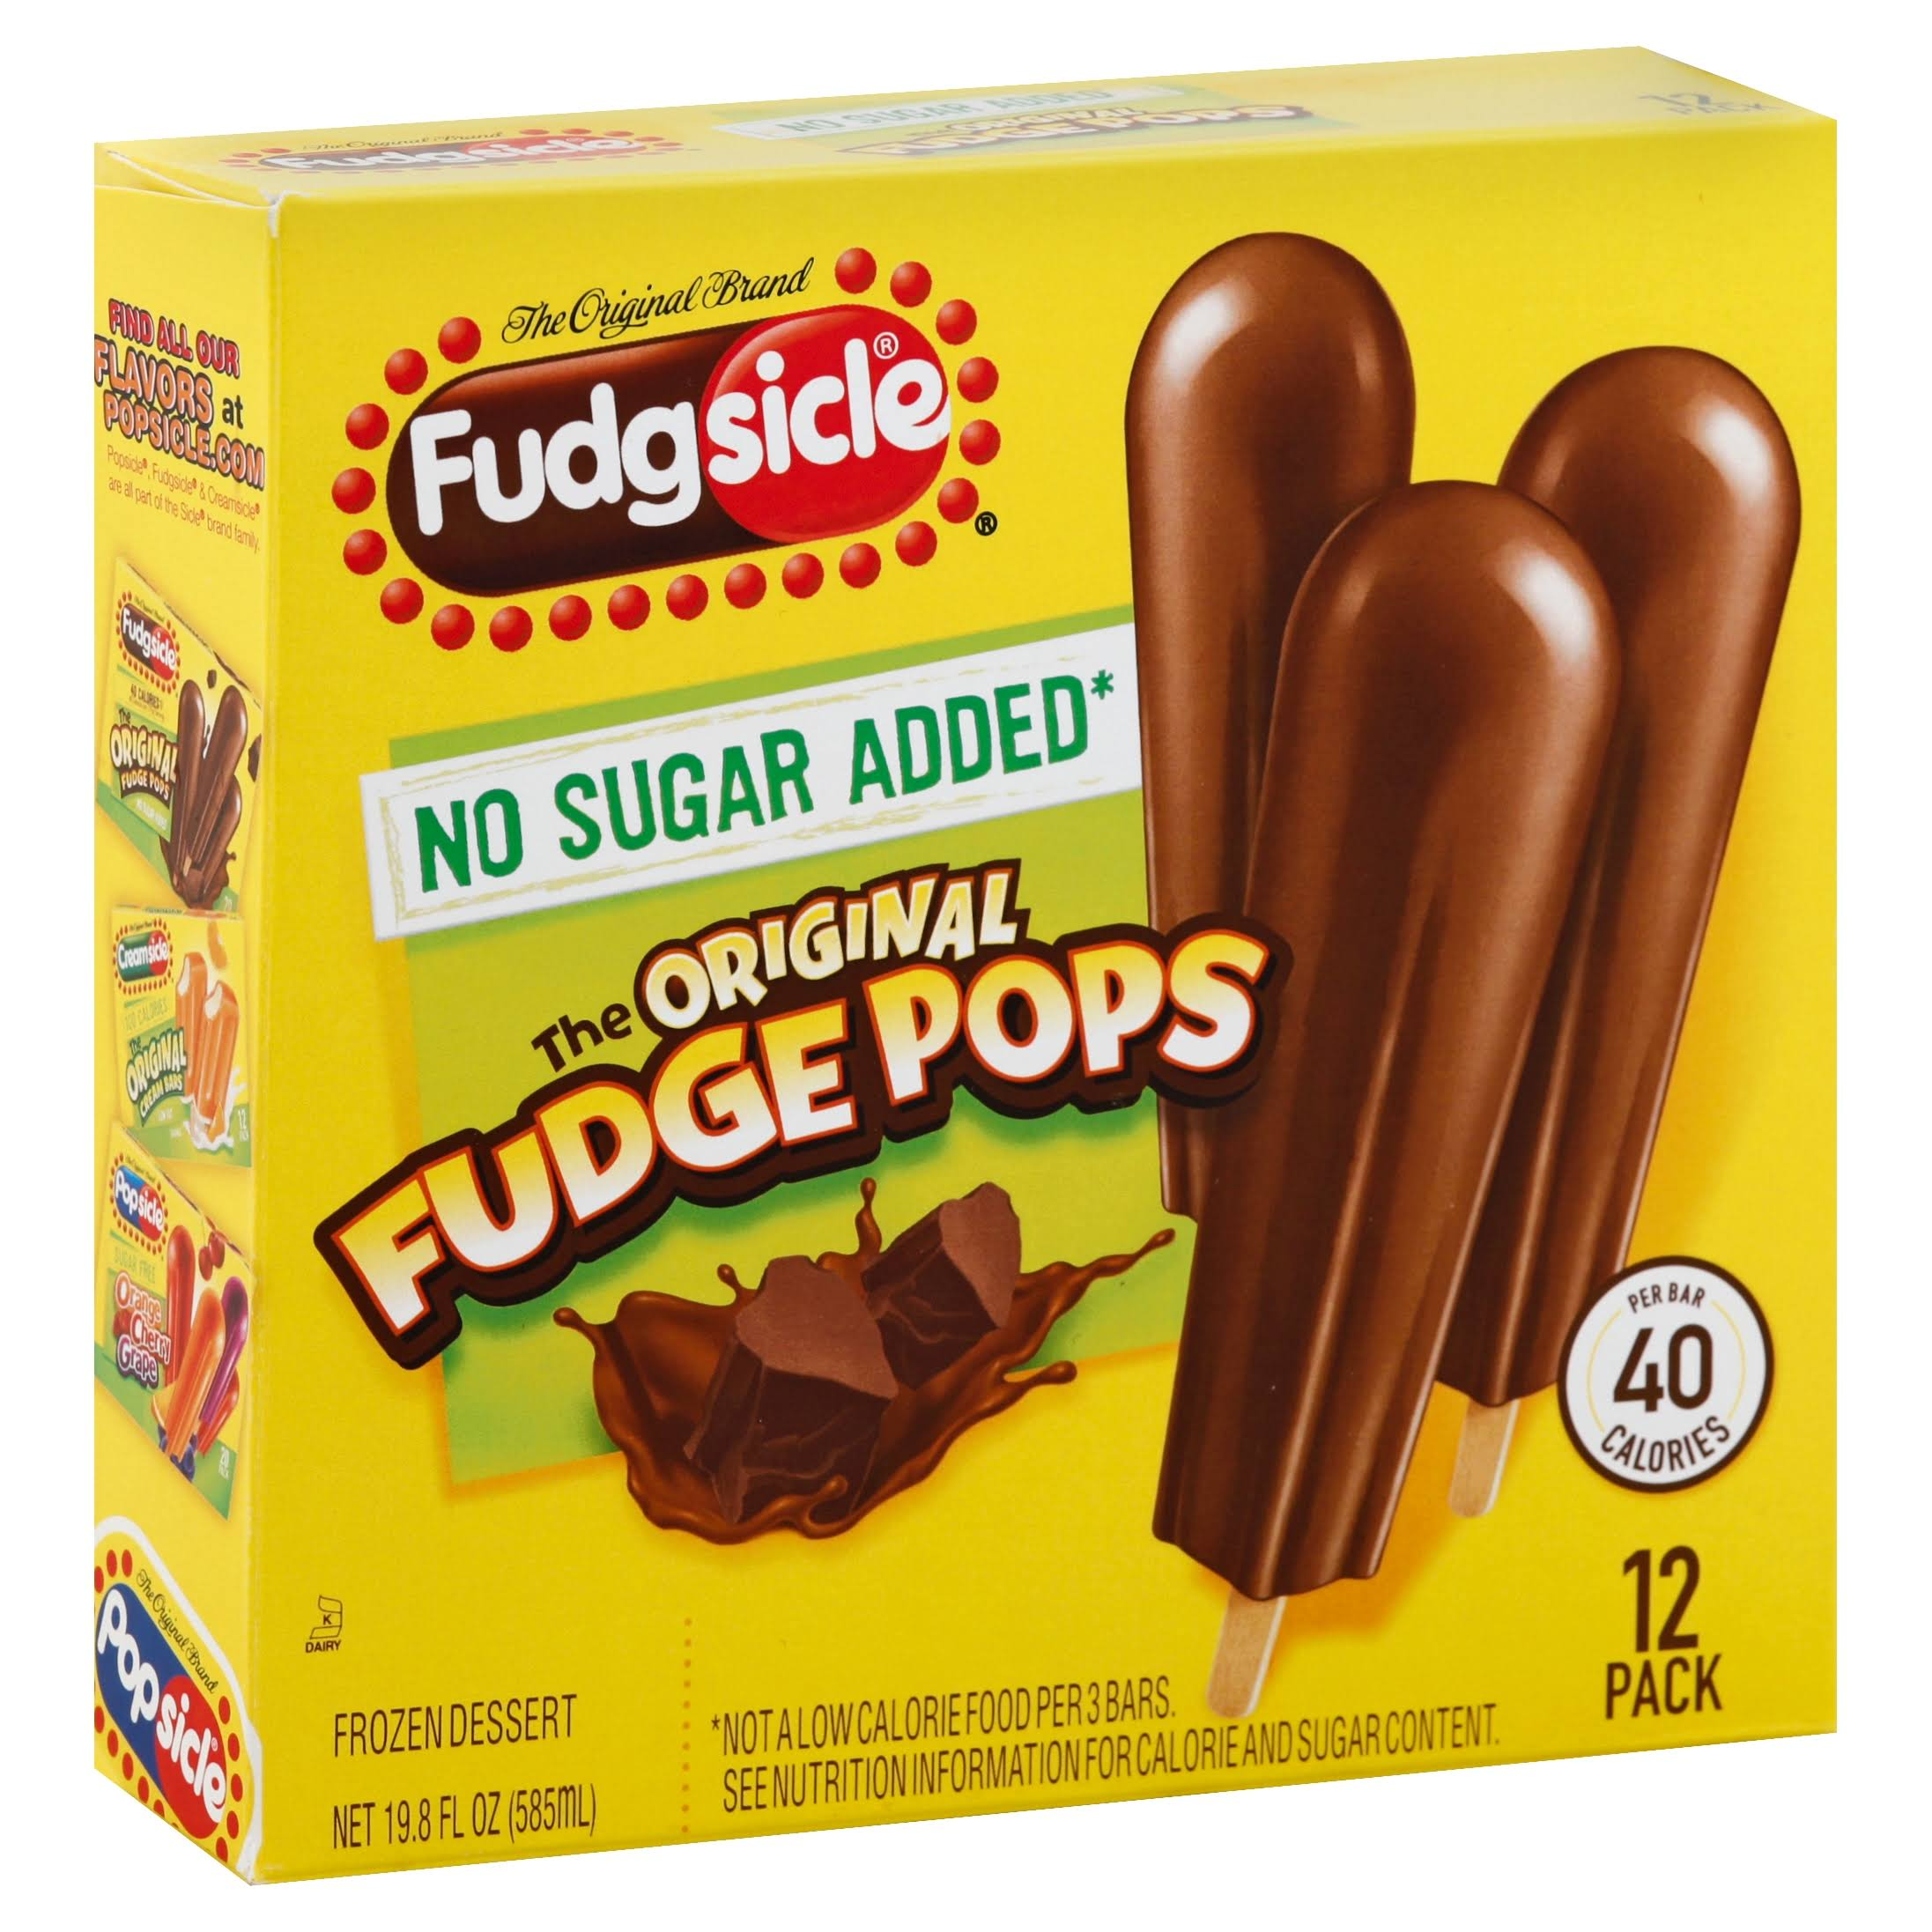 Popsicle Fudgsicle Fudge Pops - Original, No Sugar Added, 12ct